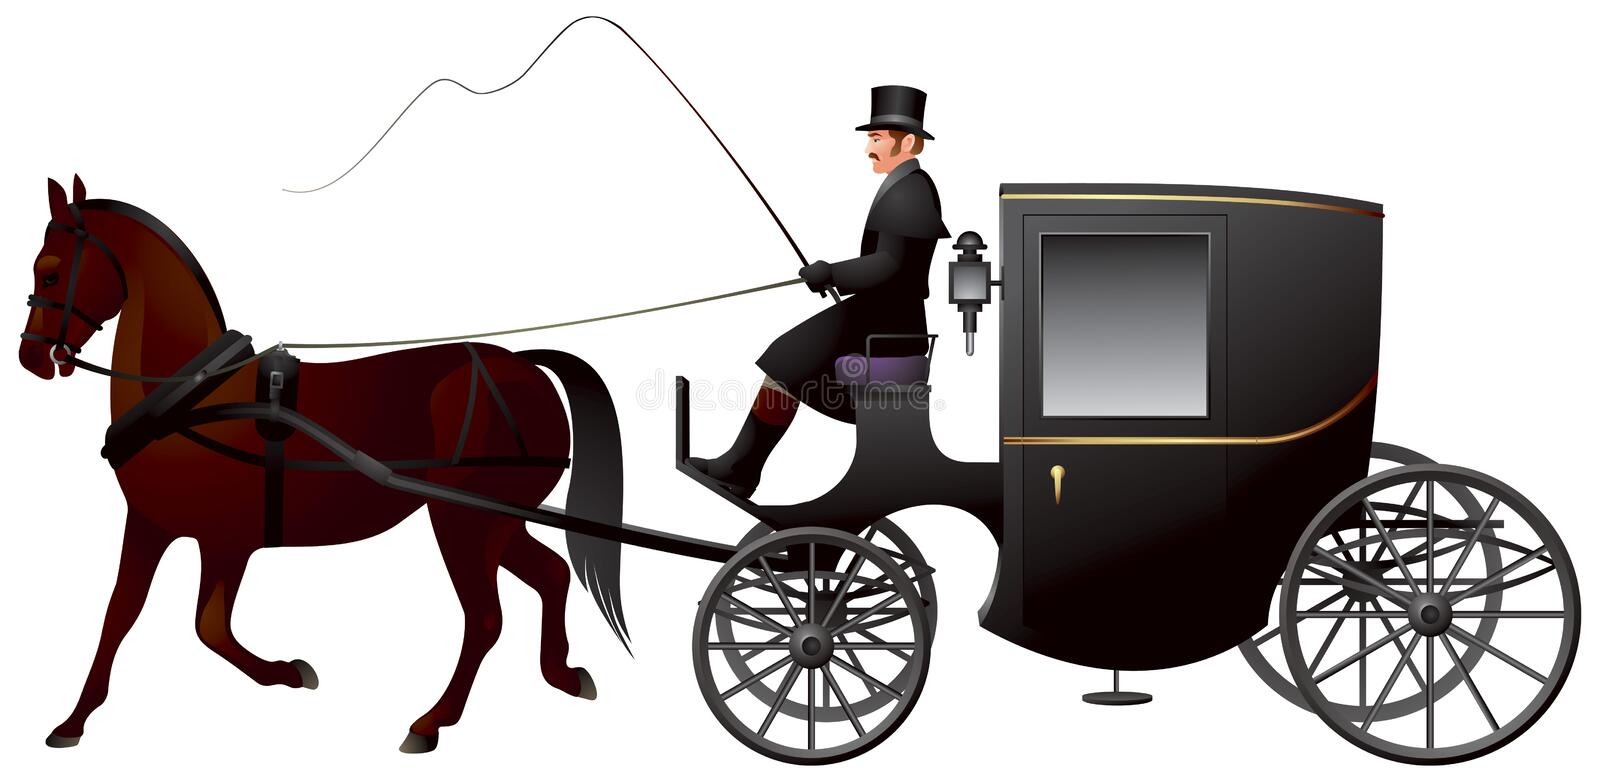 Carriage, One Horse Brougham Cab. One Horse Brougham Cab, a light four-wheeled horse-drawn carriage, popular 19th century London taxi cab vector illustration